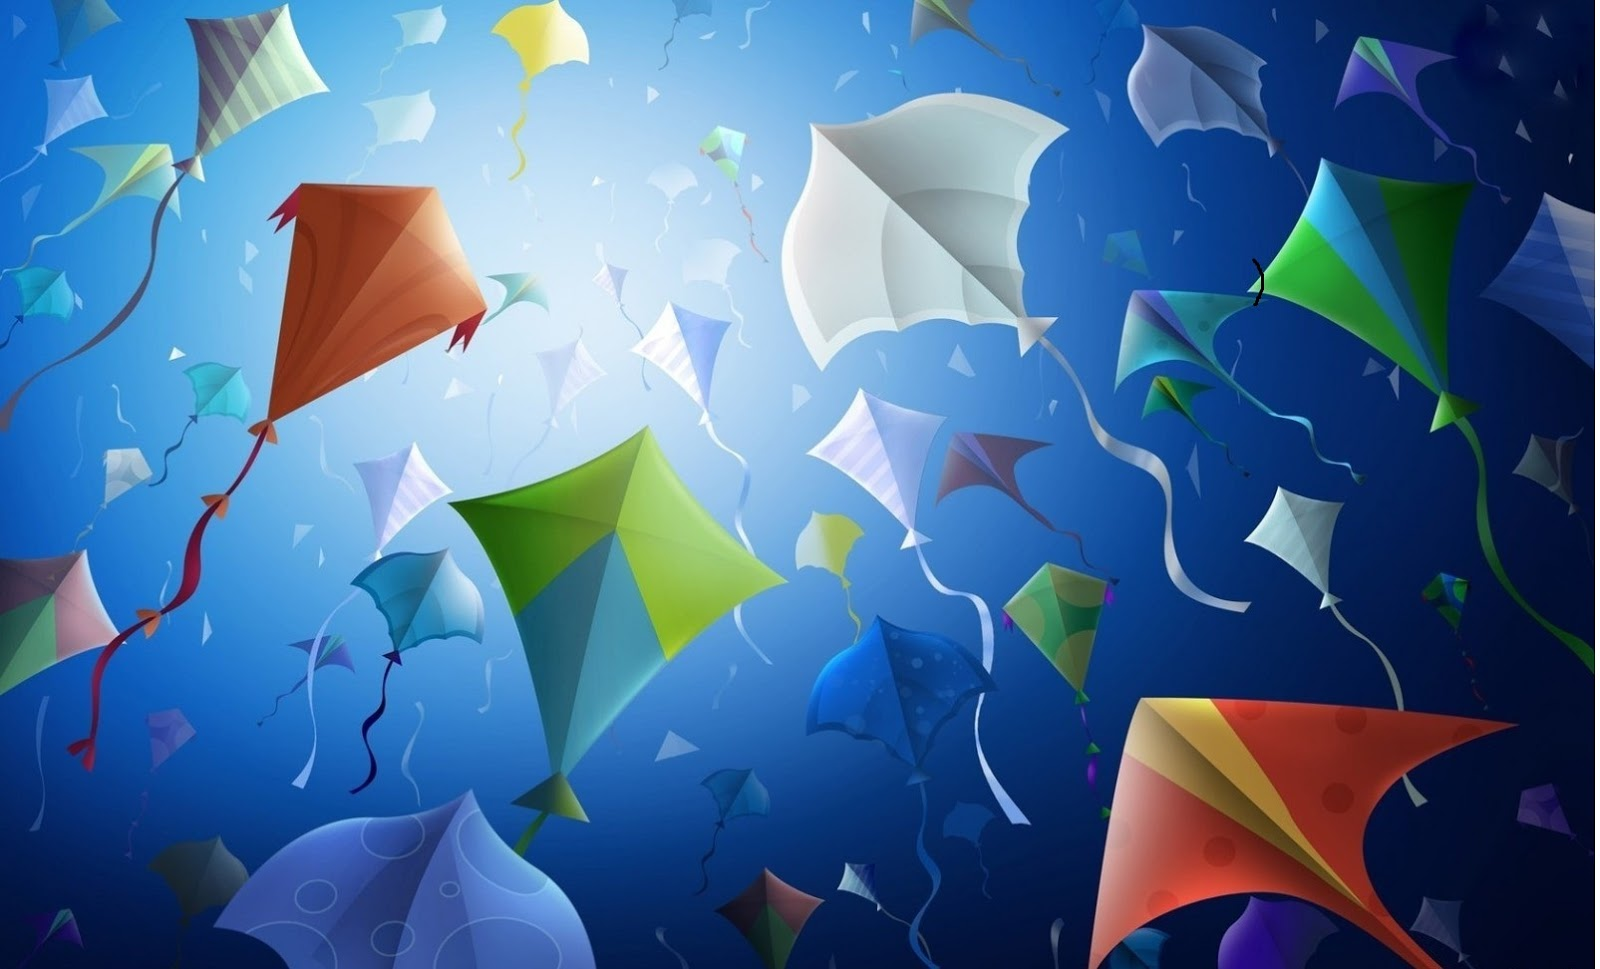 Happy Makar Sankranti 2013 Facebook Cover Photos |A World ...